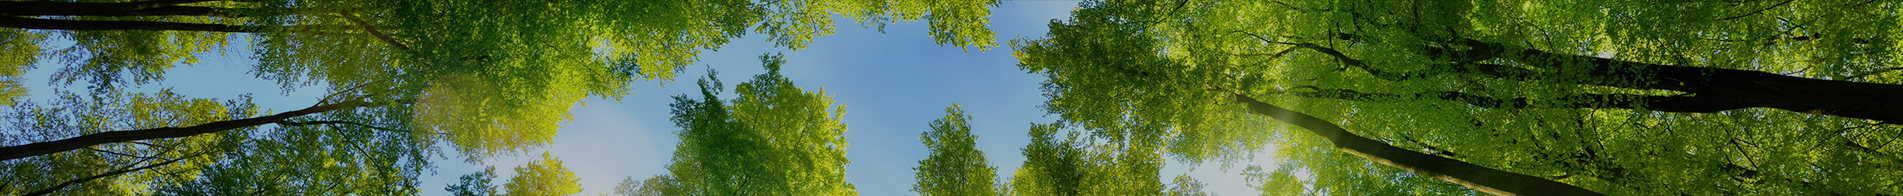 trees viewed from below with blue sky above